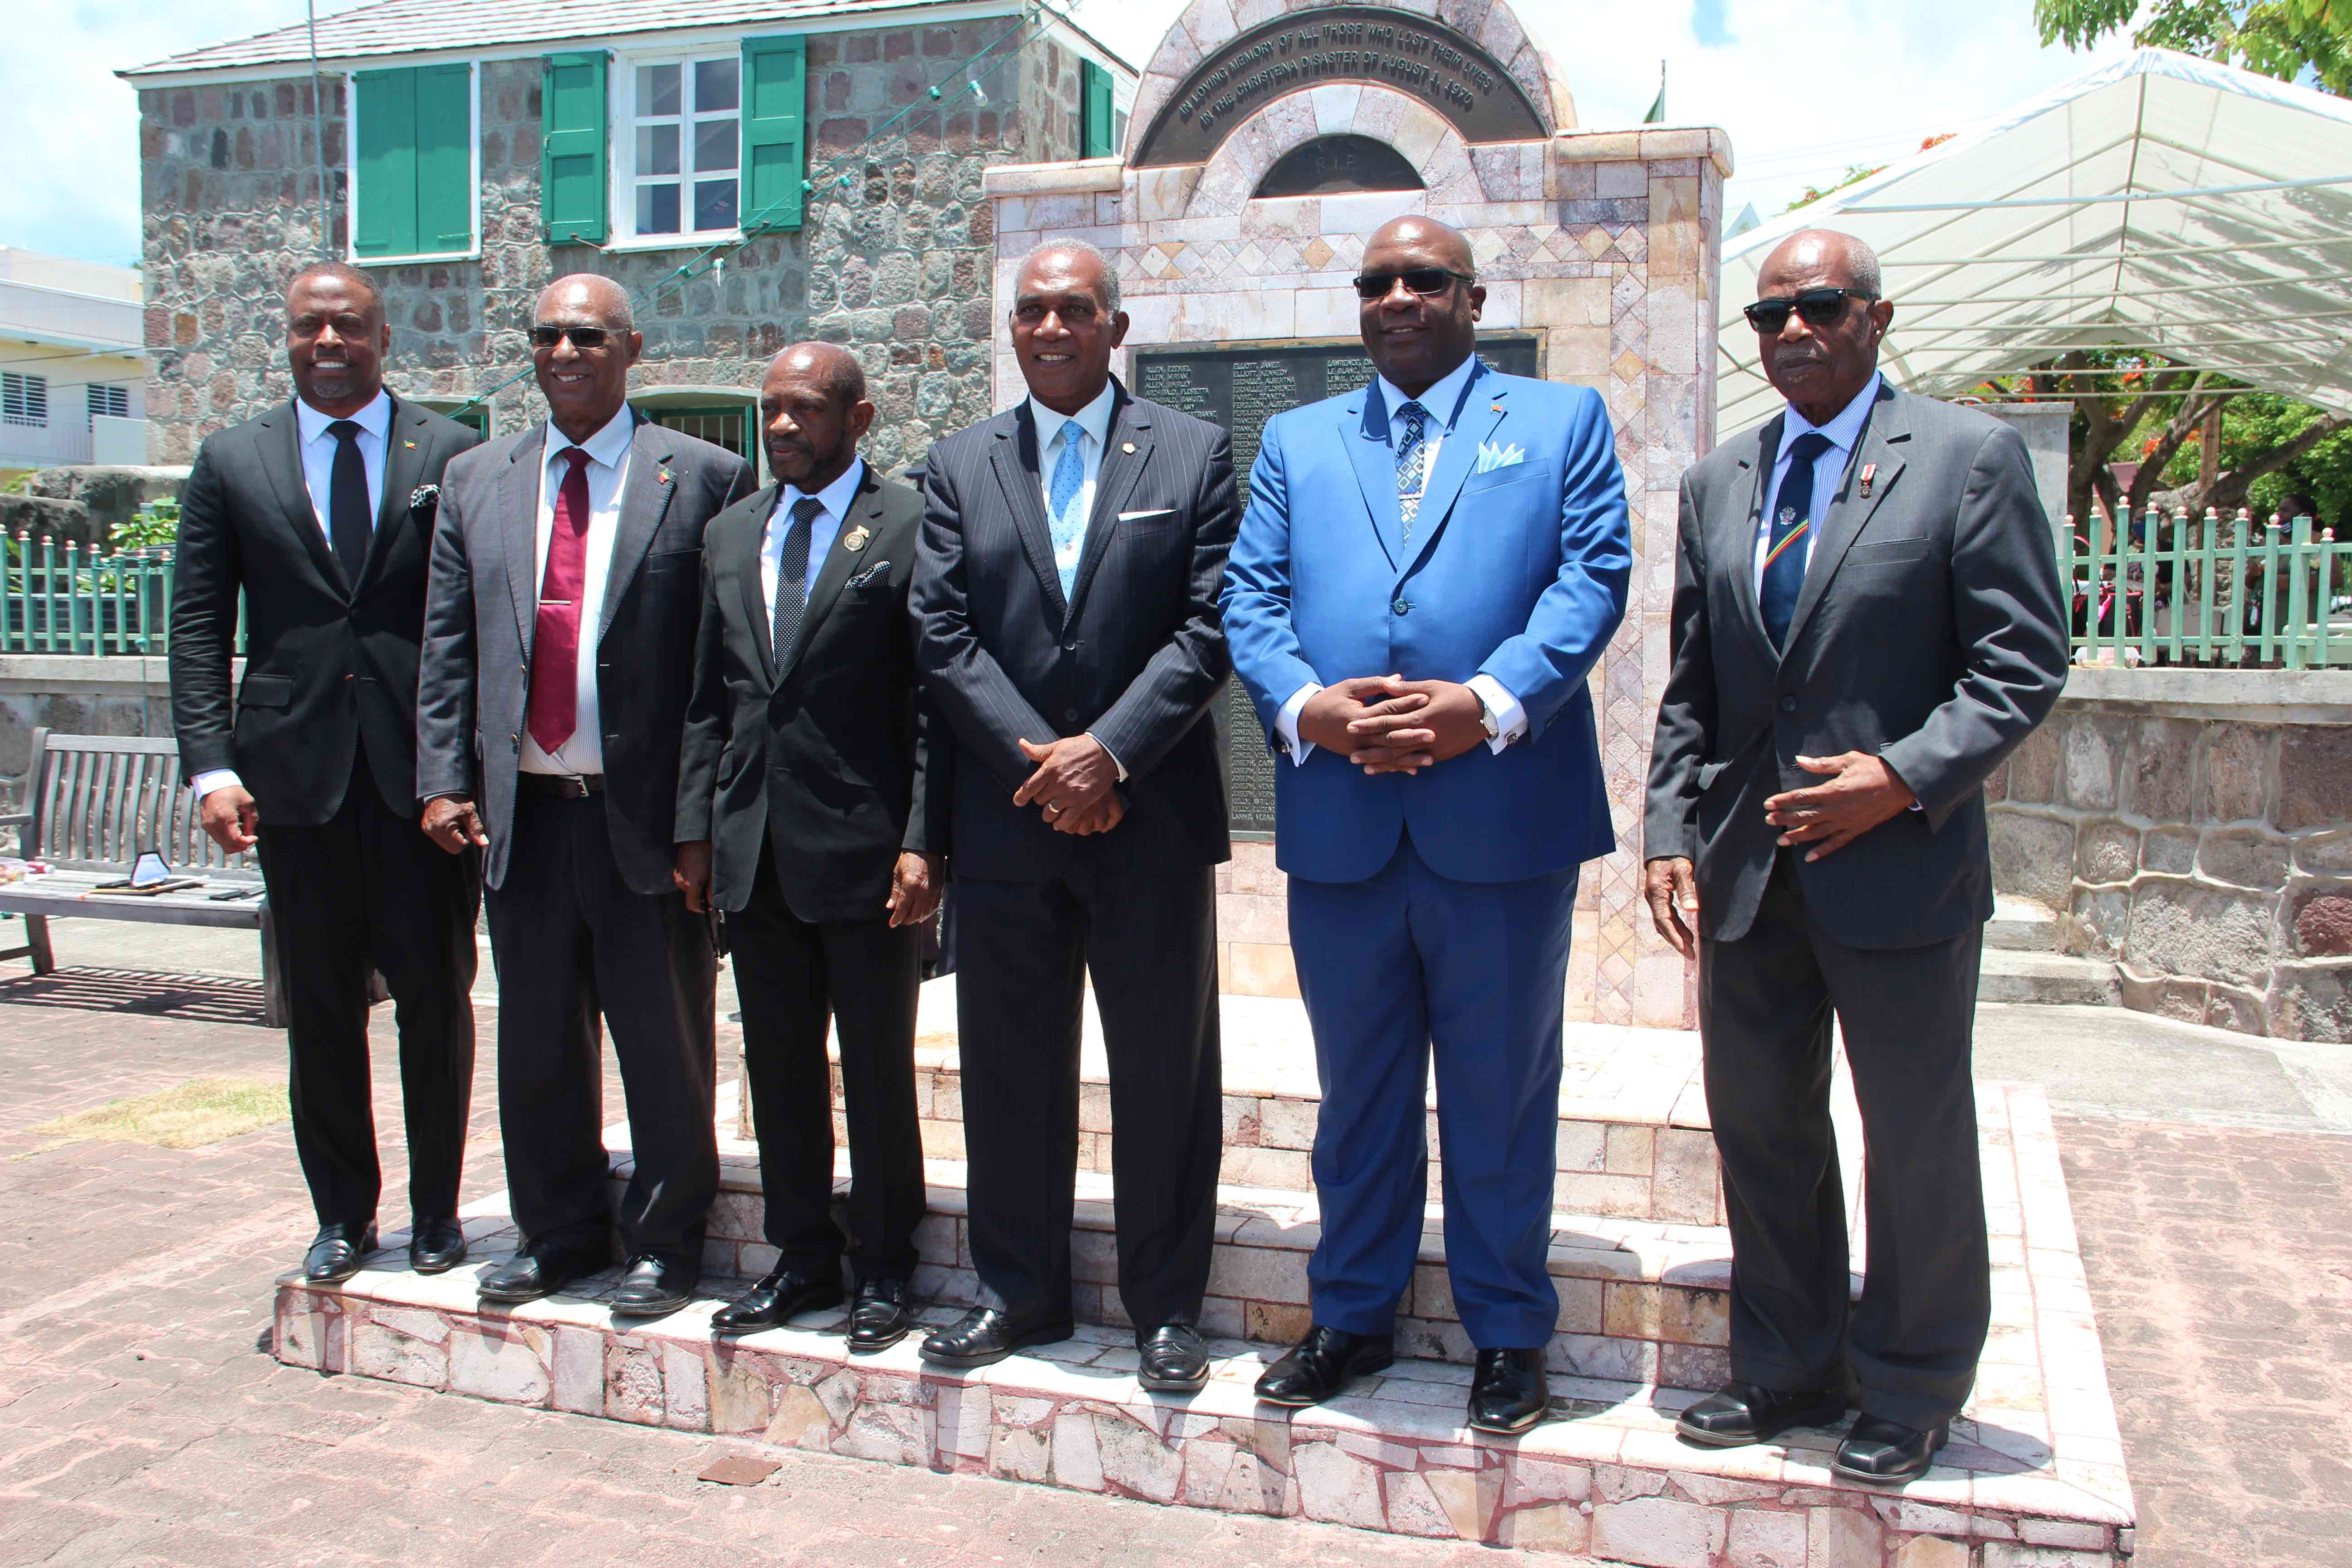 Living prime ministers and premiers in St. Kitts and Nevis on July 31, 2020, standing before the monument erected outside the Nevis Island Assembly Chambers on Samuel Hunkins Drive in memory of those who perished in the MV Christena Disaster on August 01, 1970. (L-r) Hon. Mark. Brantley, Premier of Nevis; Hon. Joseph Parry, former Premier of Nevis; The Right Hon. Denzil Douglas, former Prime Minister of St. Kitts and Nevis; Hon. Vance Amory, former Premier of Nevis; Dr. the Hon. Timothy Harris, Prime Minister of St. Kitts and Nevis; and Dr. the Right Excellency and Right Hon. Sir Kennedy Simmonds, former Prime Minister of St. Kitts and Nevis